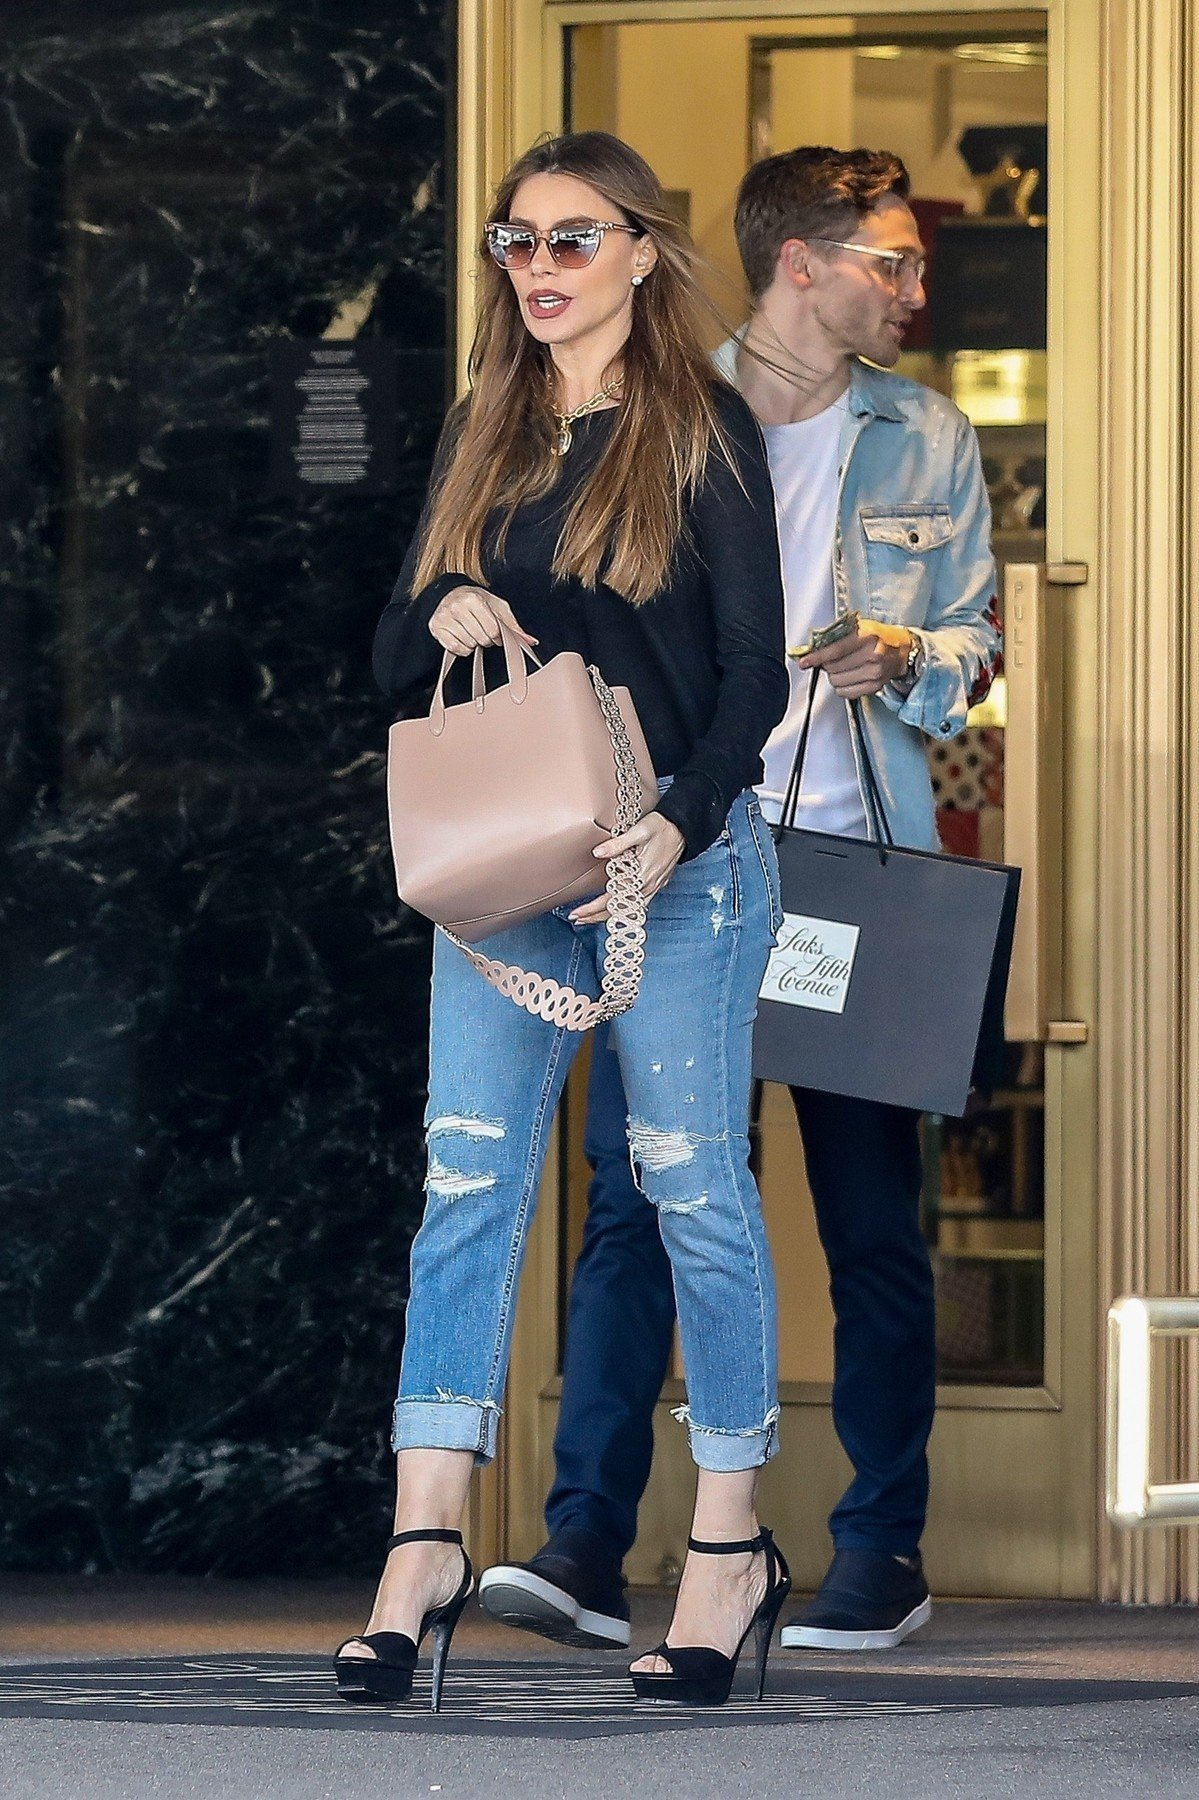 Beverly Hills, CA  - *EXCLUSIVE* - Sofia Vergara is out in Los Angeles getting some hard-earned cash at Sax On Fifth Ave. The wind sweeps the actress' hair as she exits the luxury retailer next to a male companion that carries her shopping bag.  Pictured: Sofia Vergara    *UK Clients - Pictures Containing Children Please Pixelate Face Prior To Publication*, Image: 424111369, License: Rights-managed, Restrictions: , Model Release: no, Credit line: Profimedia, Backgrid USA